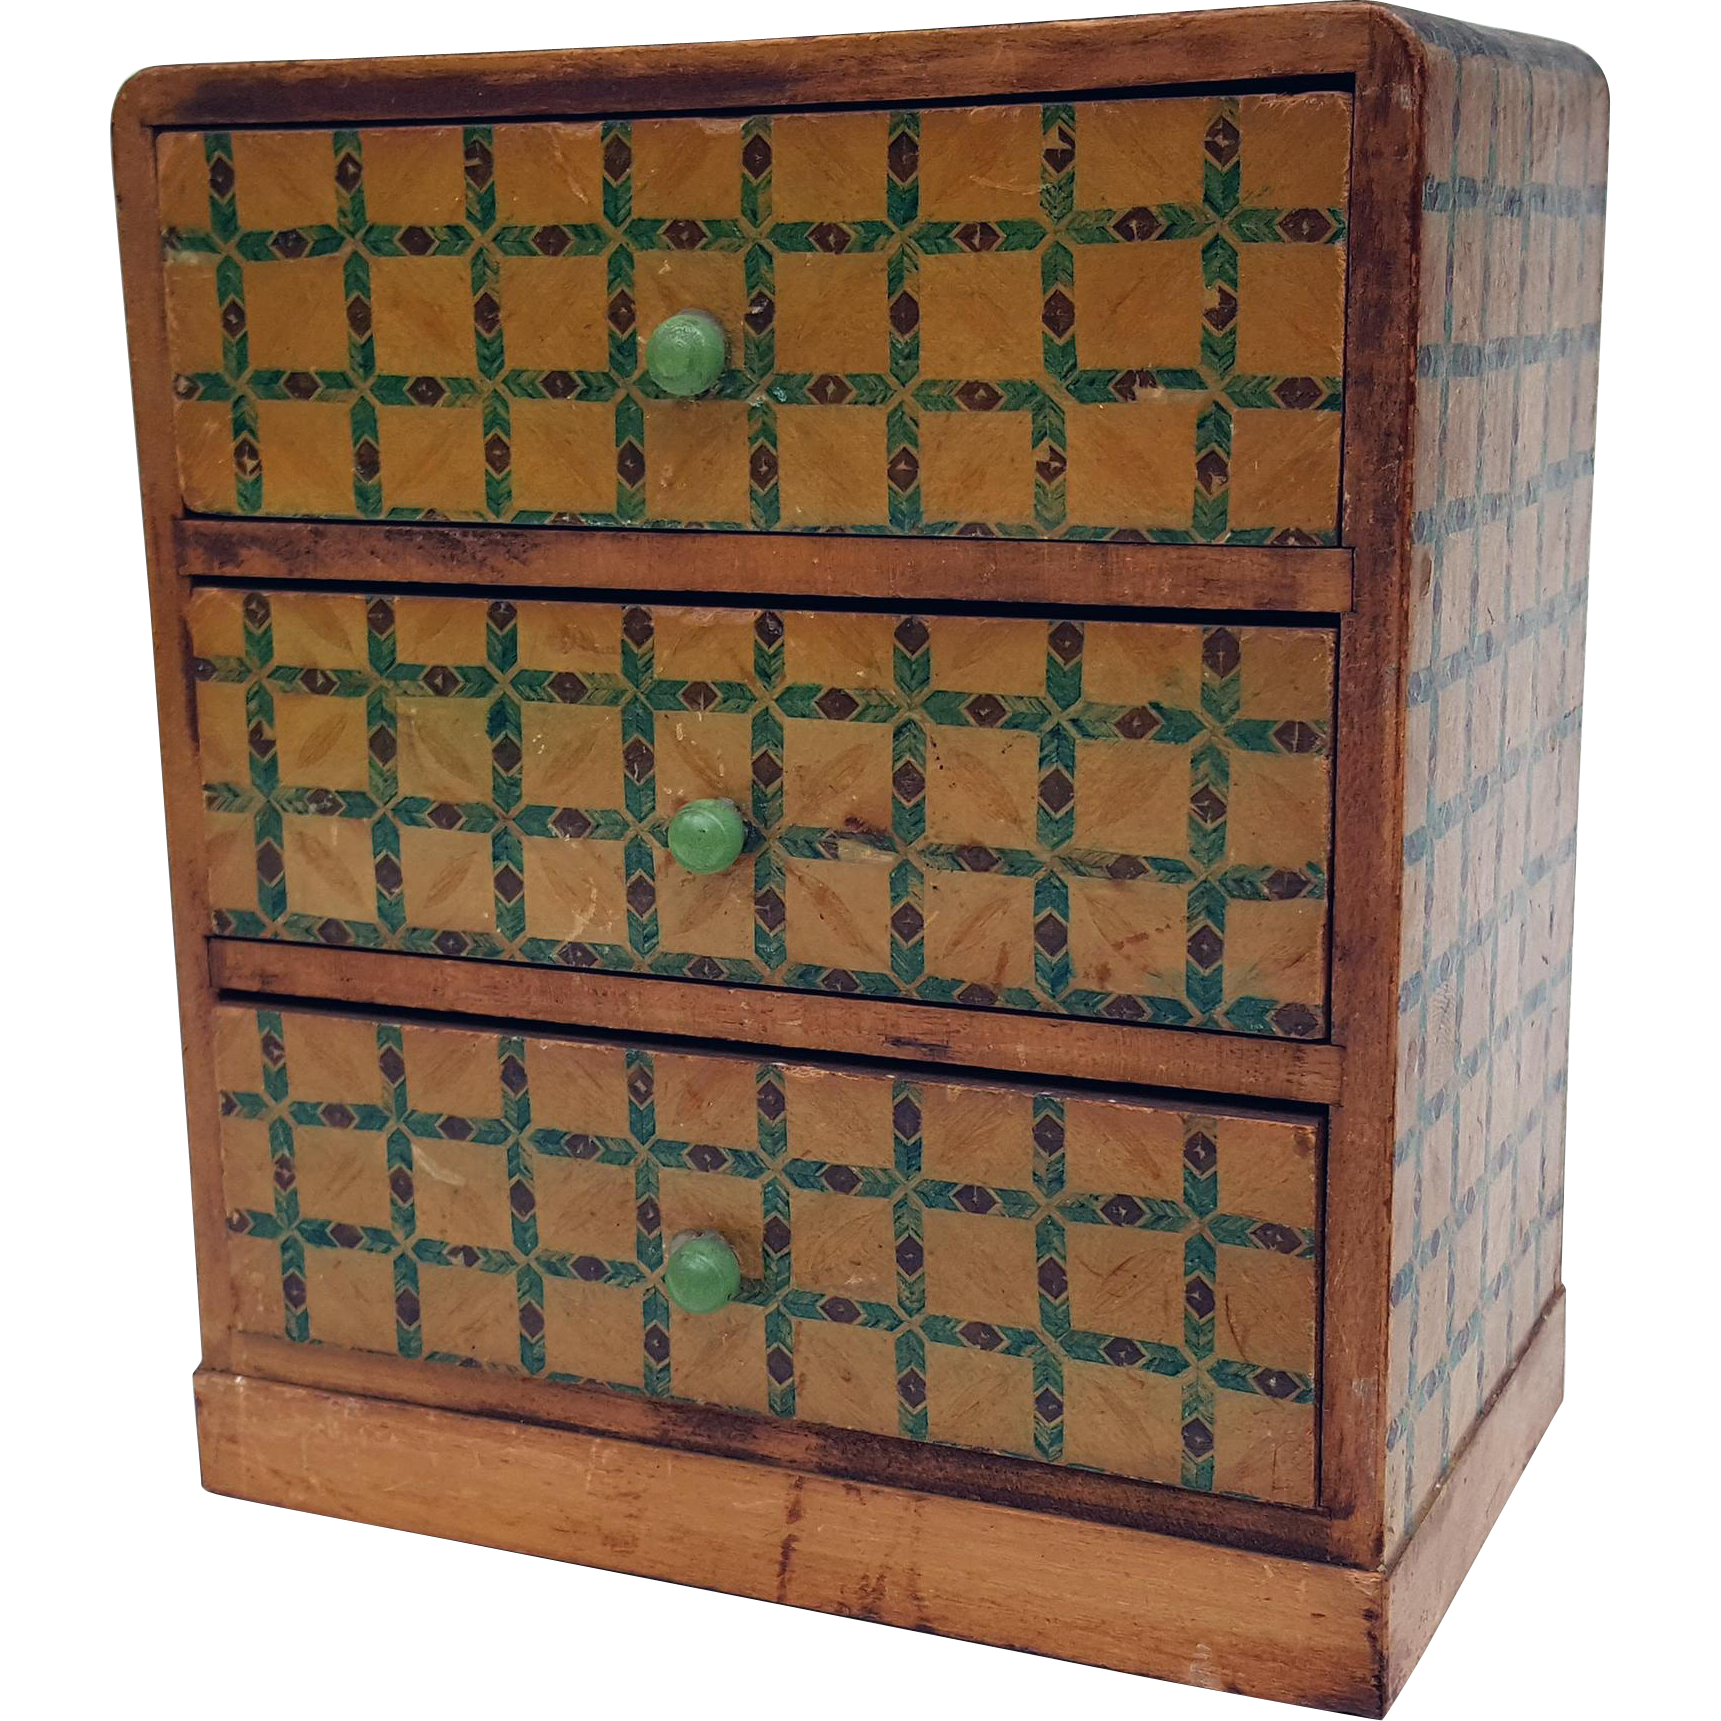 Vintage miniature three drawer chest bureau wood paper covered green brown diamond arrow pattern Made in Japan 6 inches